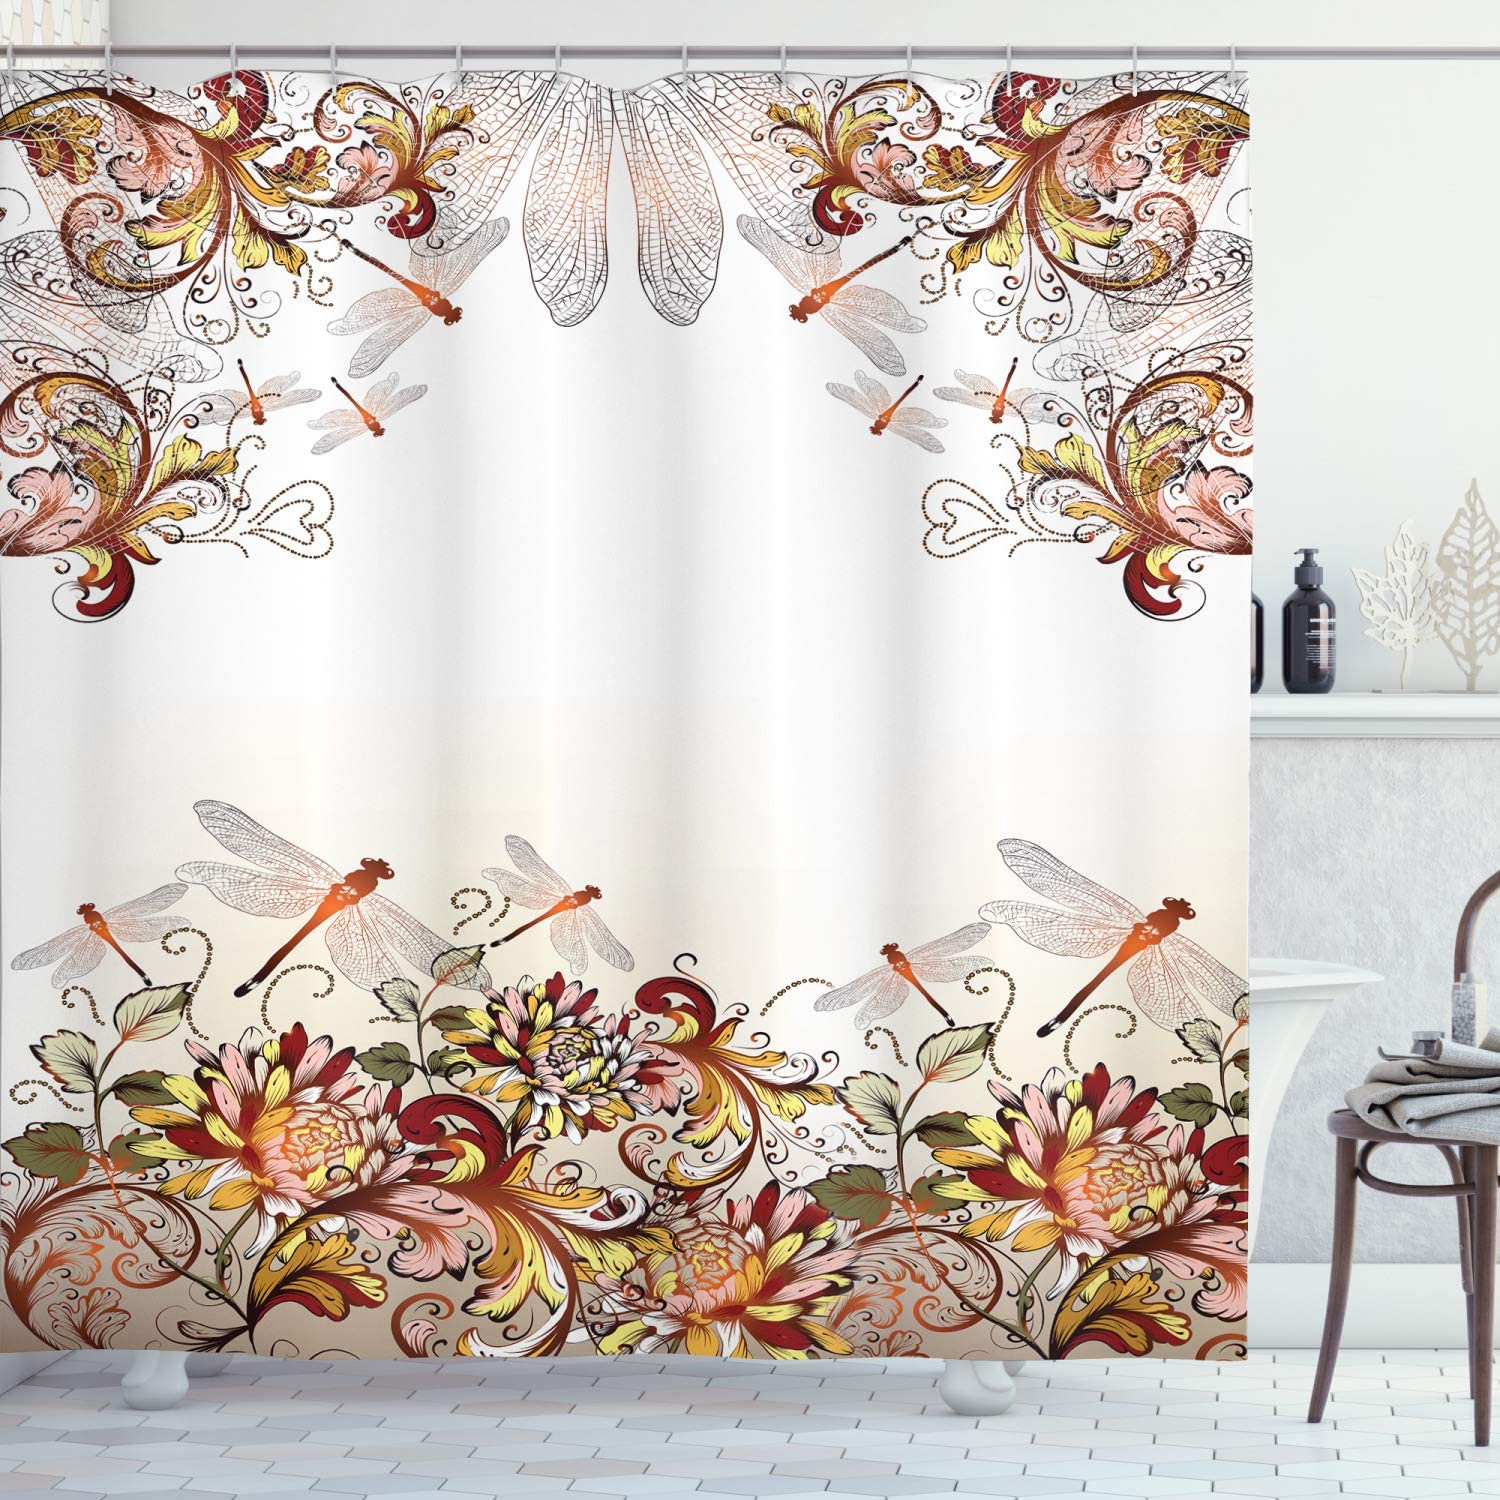 Ambesonne Floral Shower Curtain, Dragonflies and Wildflowers Romantic Illustration of Nature with Ornamental Swirls, Cloth Fabric Bathroom Decor Set with Hooks, 70